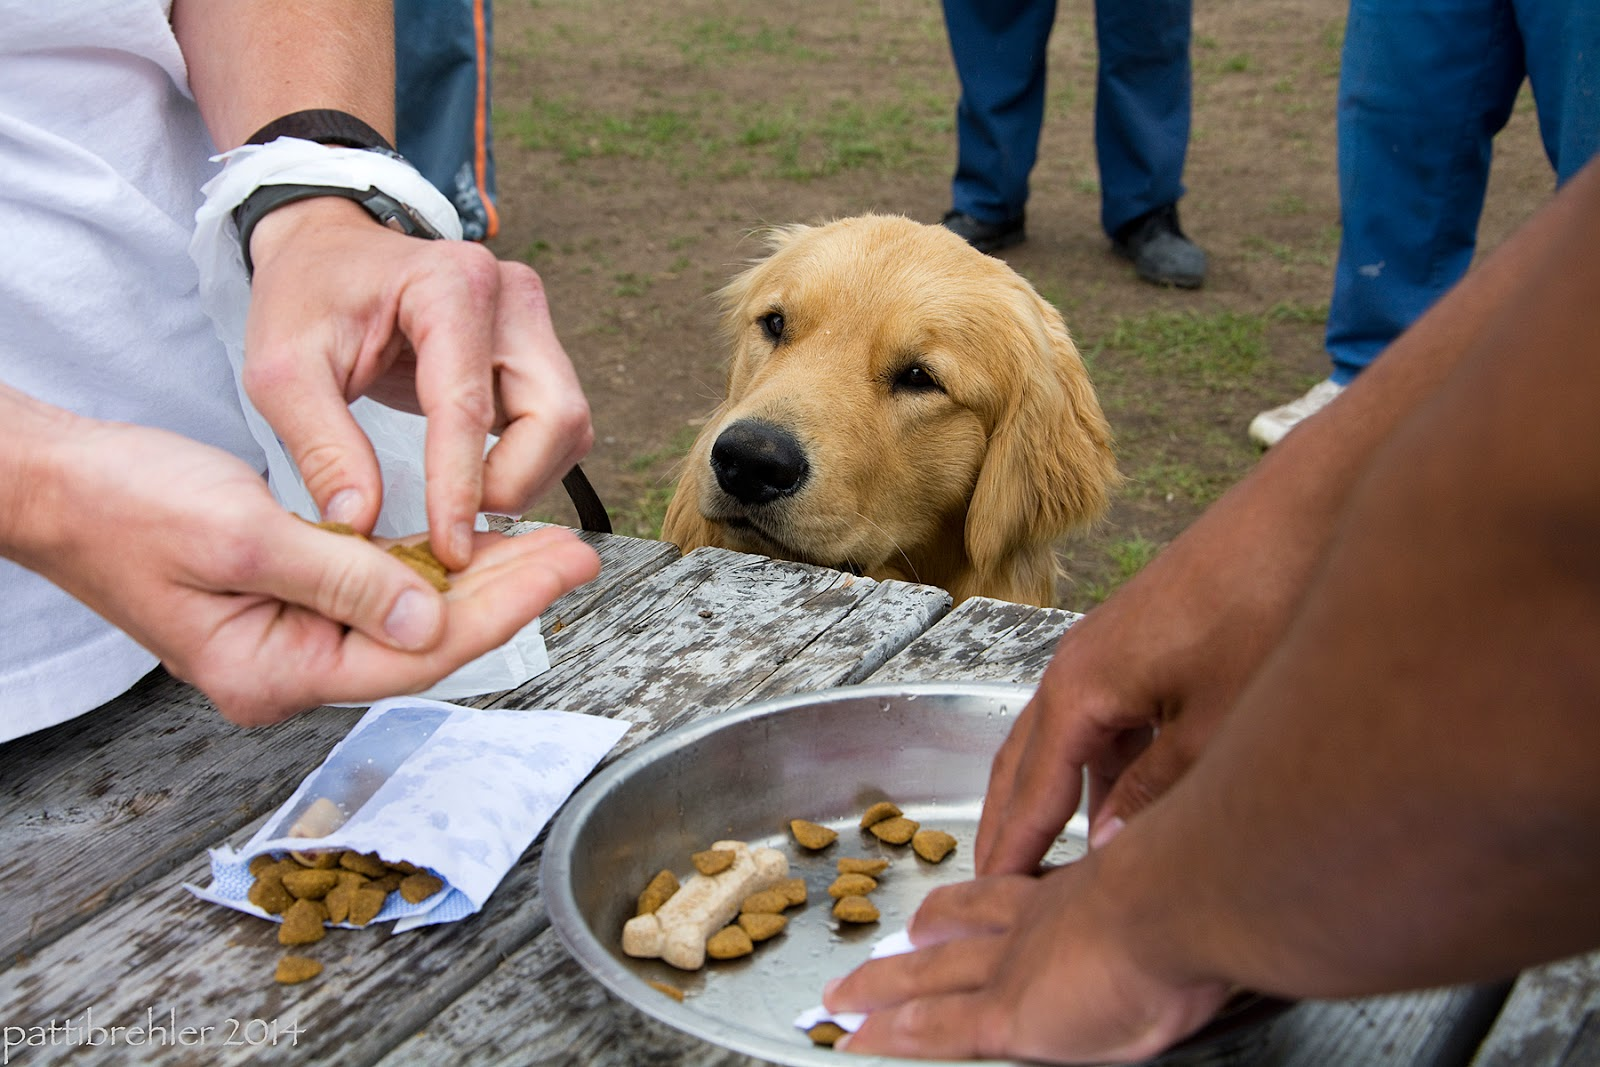 "A golden retriever is sitting next to a wood picnic table, peering at his handler's hands. The handler, on the left, has a handful of kibble in his right hand and is taking bits out with his left hand. The puppy's leash is around the man's left wrist, as well as the handle of a plastic shopping bag. On the table is a ripped open envelop with kibble spilling out and a silver dog bowl filles with bits of kibble and a milkbone. The ""cashier's"" arms are hlding the bowl from the right side. In the background are the legs of two men dressd in the prison blue uniforms."